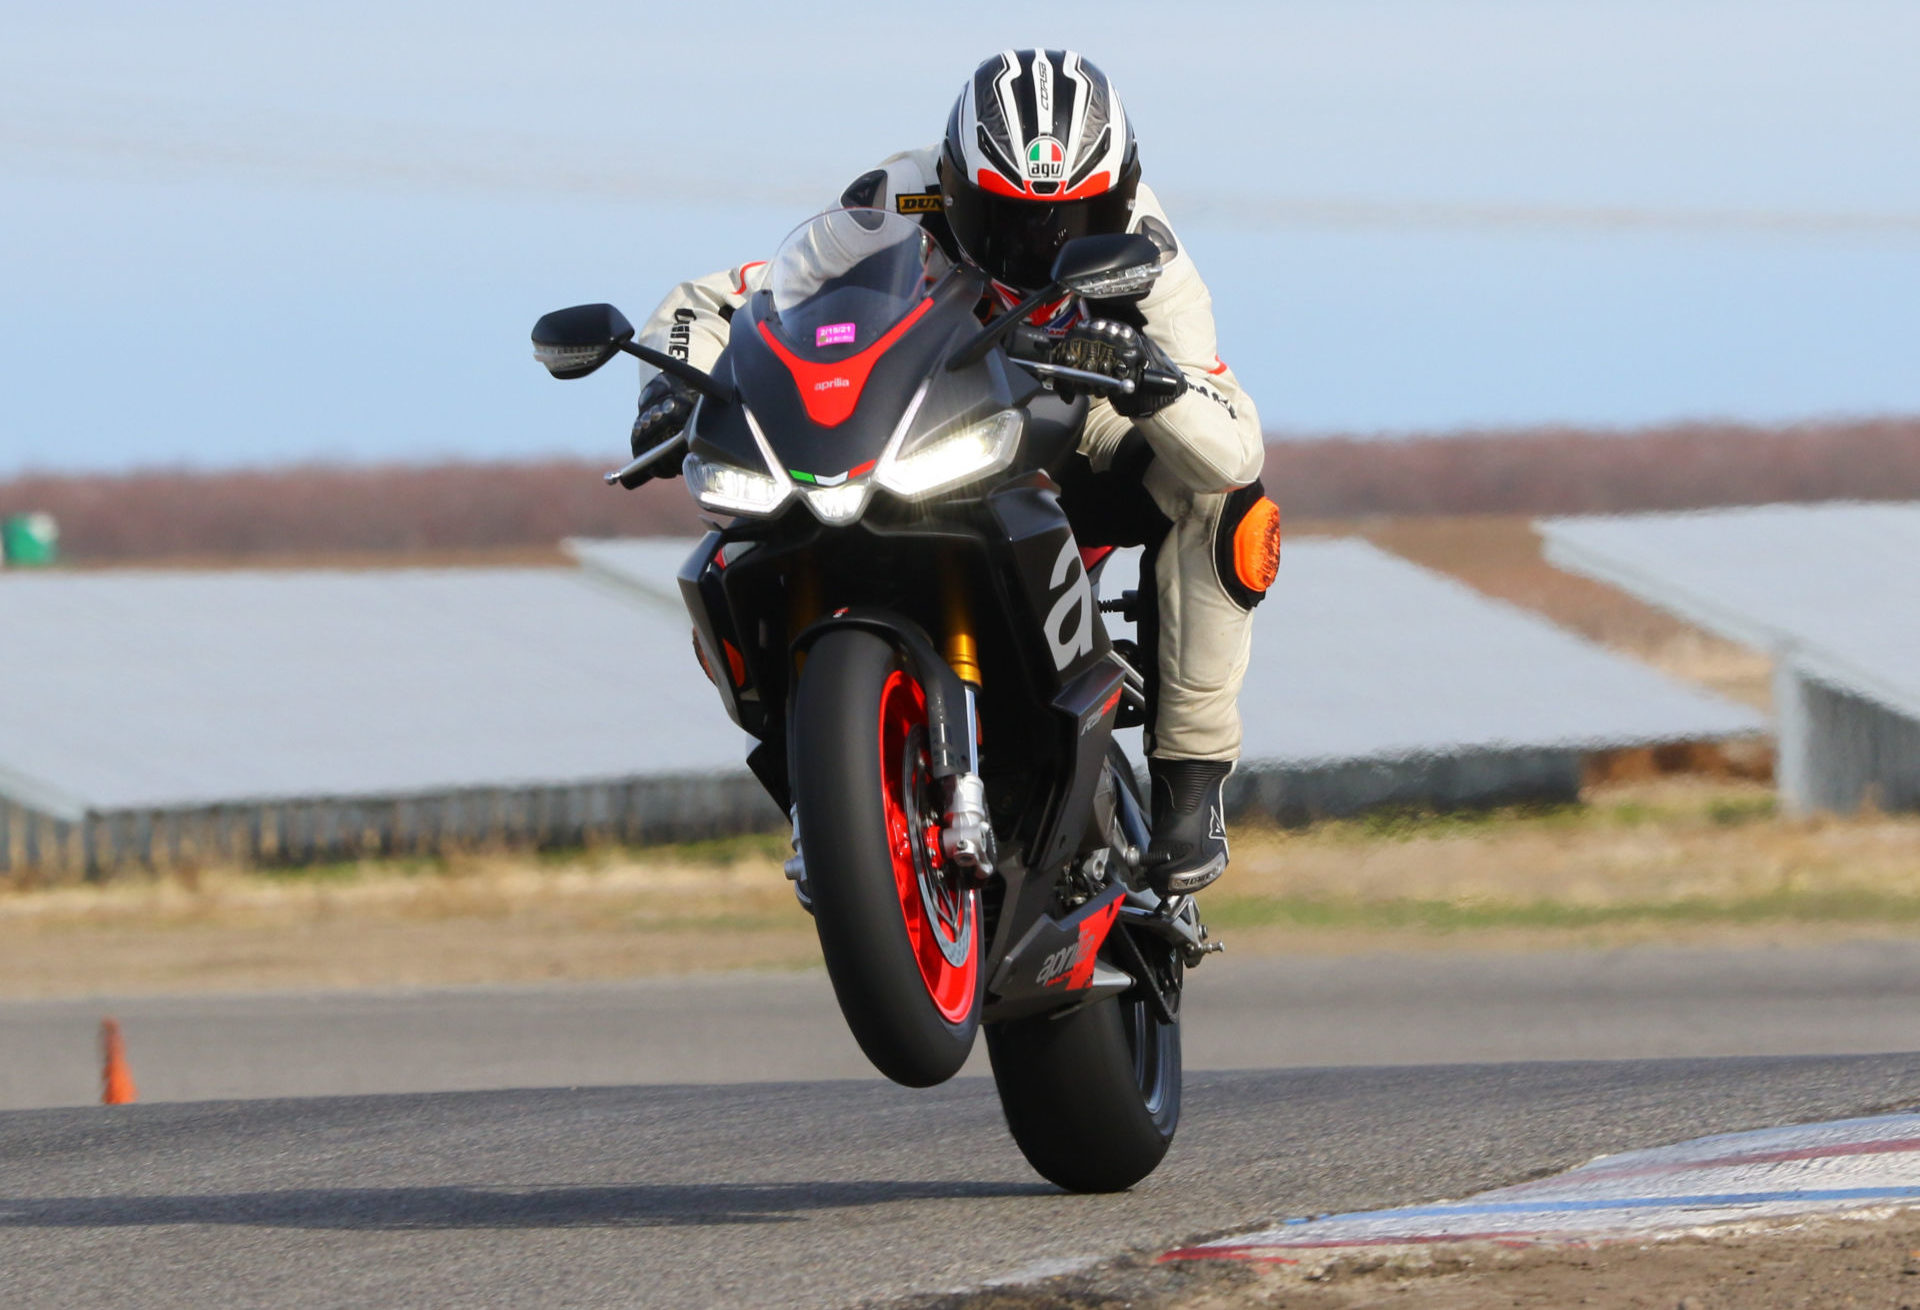 The 2021 Aprilia RS 660 has met the AMA's homologation requirements and is approved to compete in the 2021 MotoAmerica Twins Cup Championship. Photo by CaliPhotography, courtesy MotoAmerica.